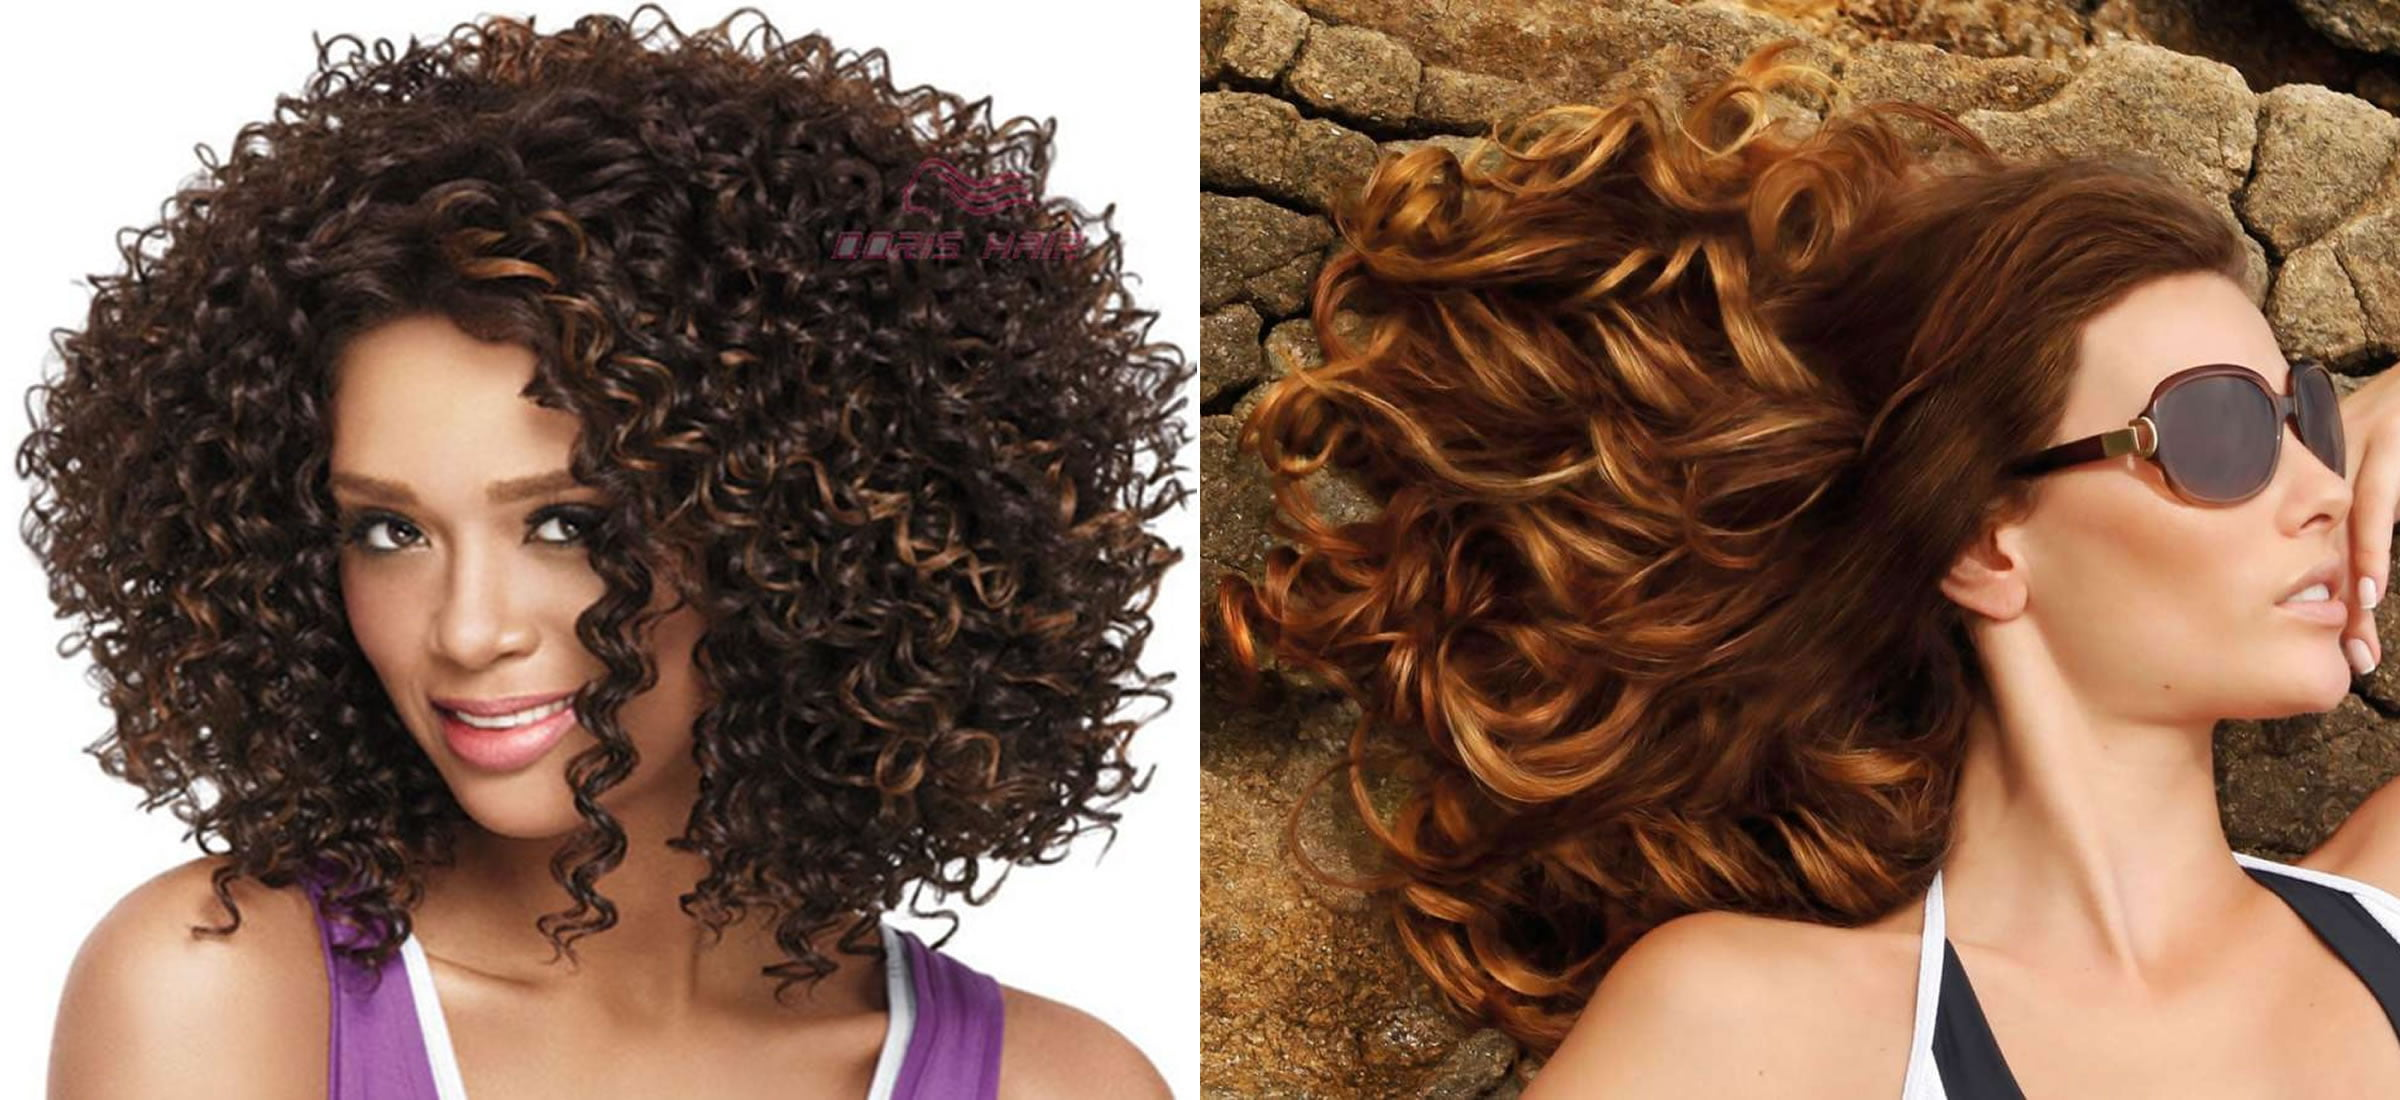 Medium hairstyles 2019 – Latest curly & wavy haircuts for ... - photo #1